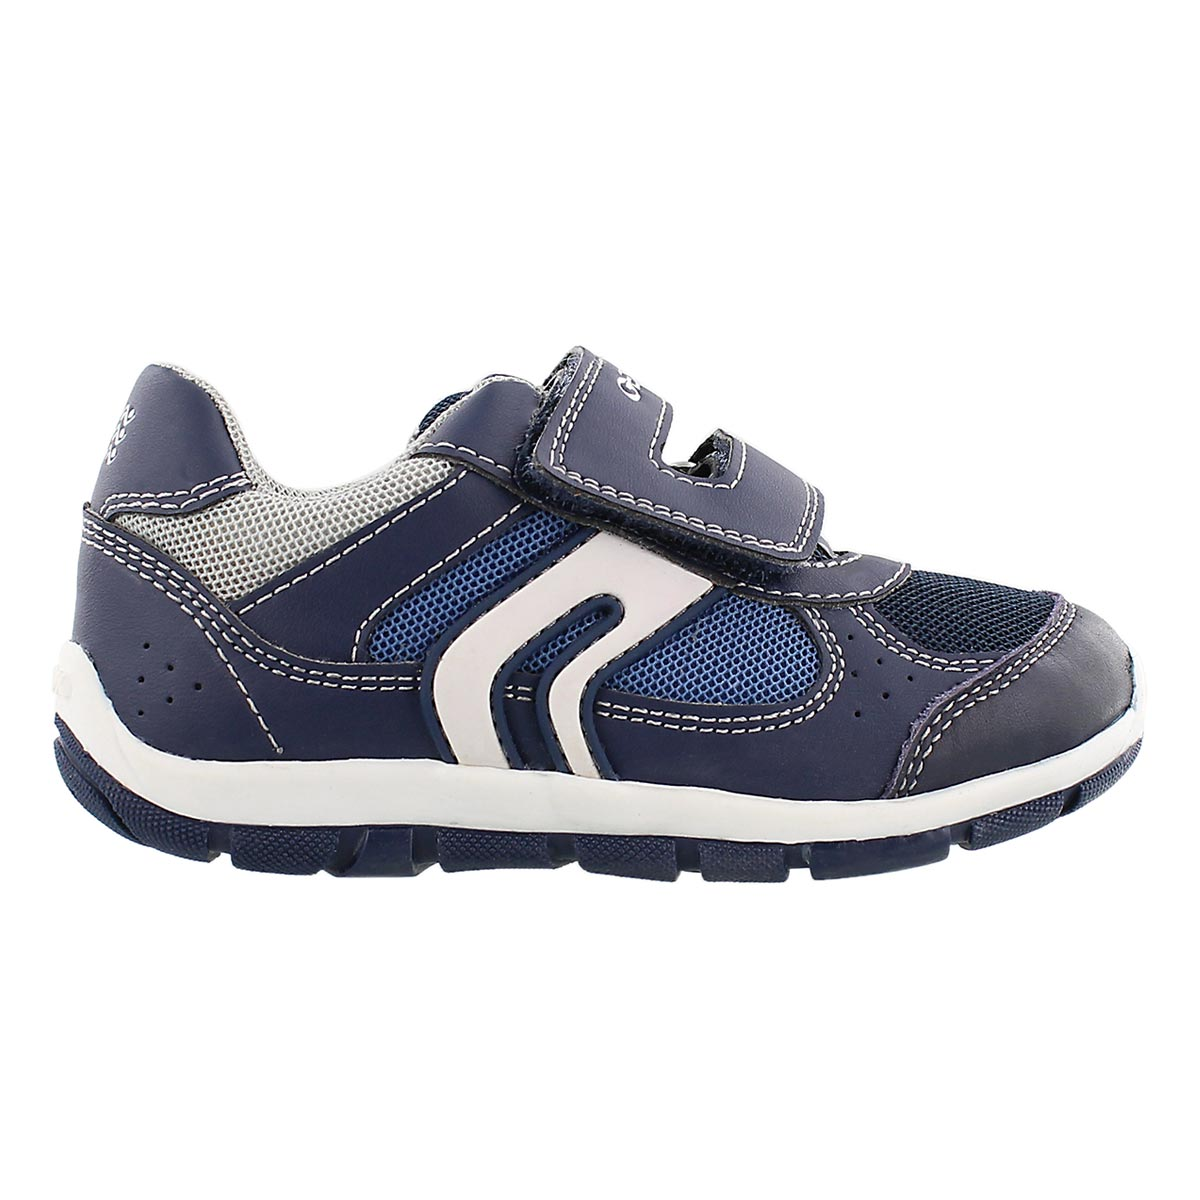 Inf Shaax navy 2 double strap sneaker